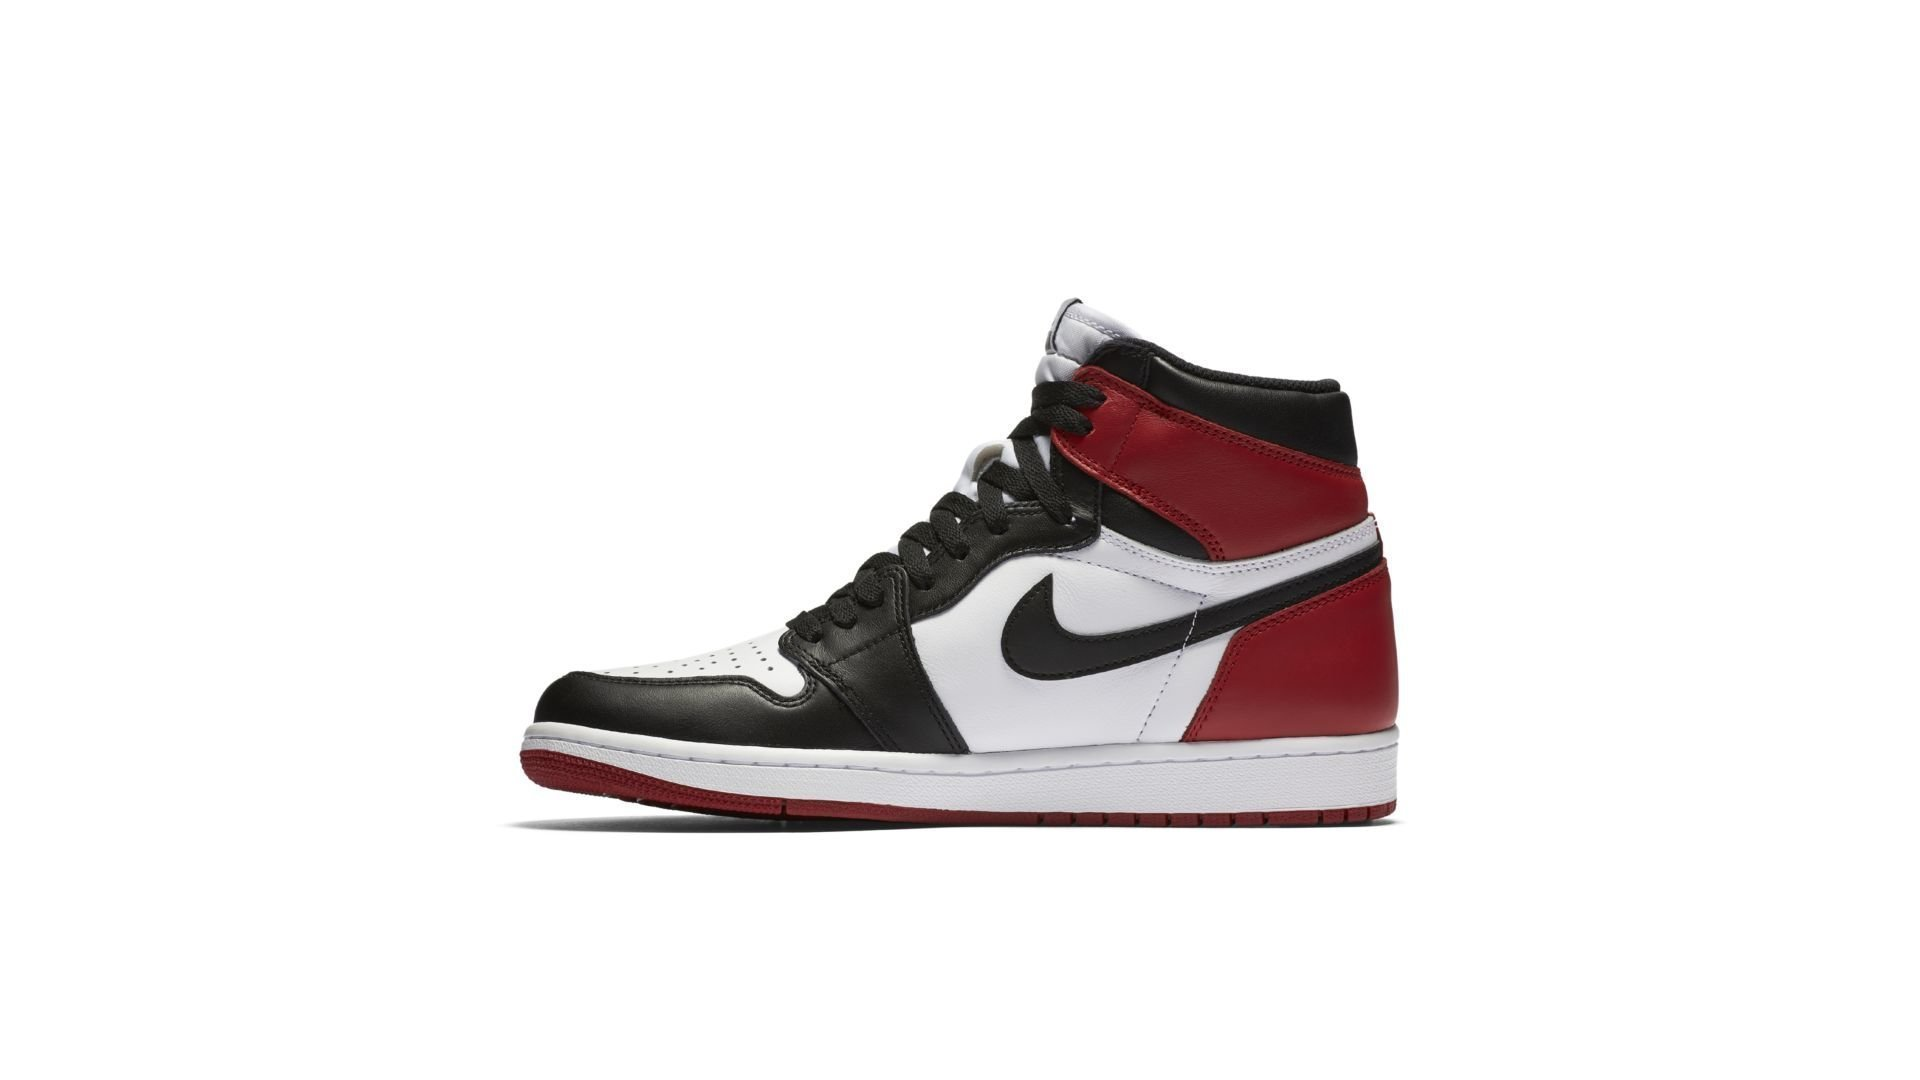 Jordan 1 Retro Black Toe (2016) (555088-125)